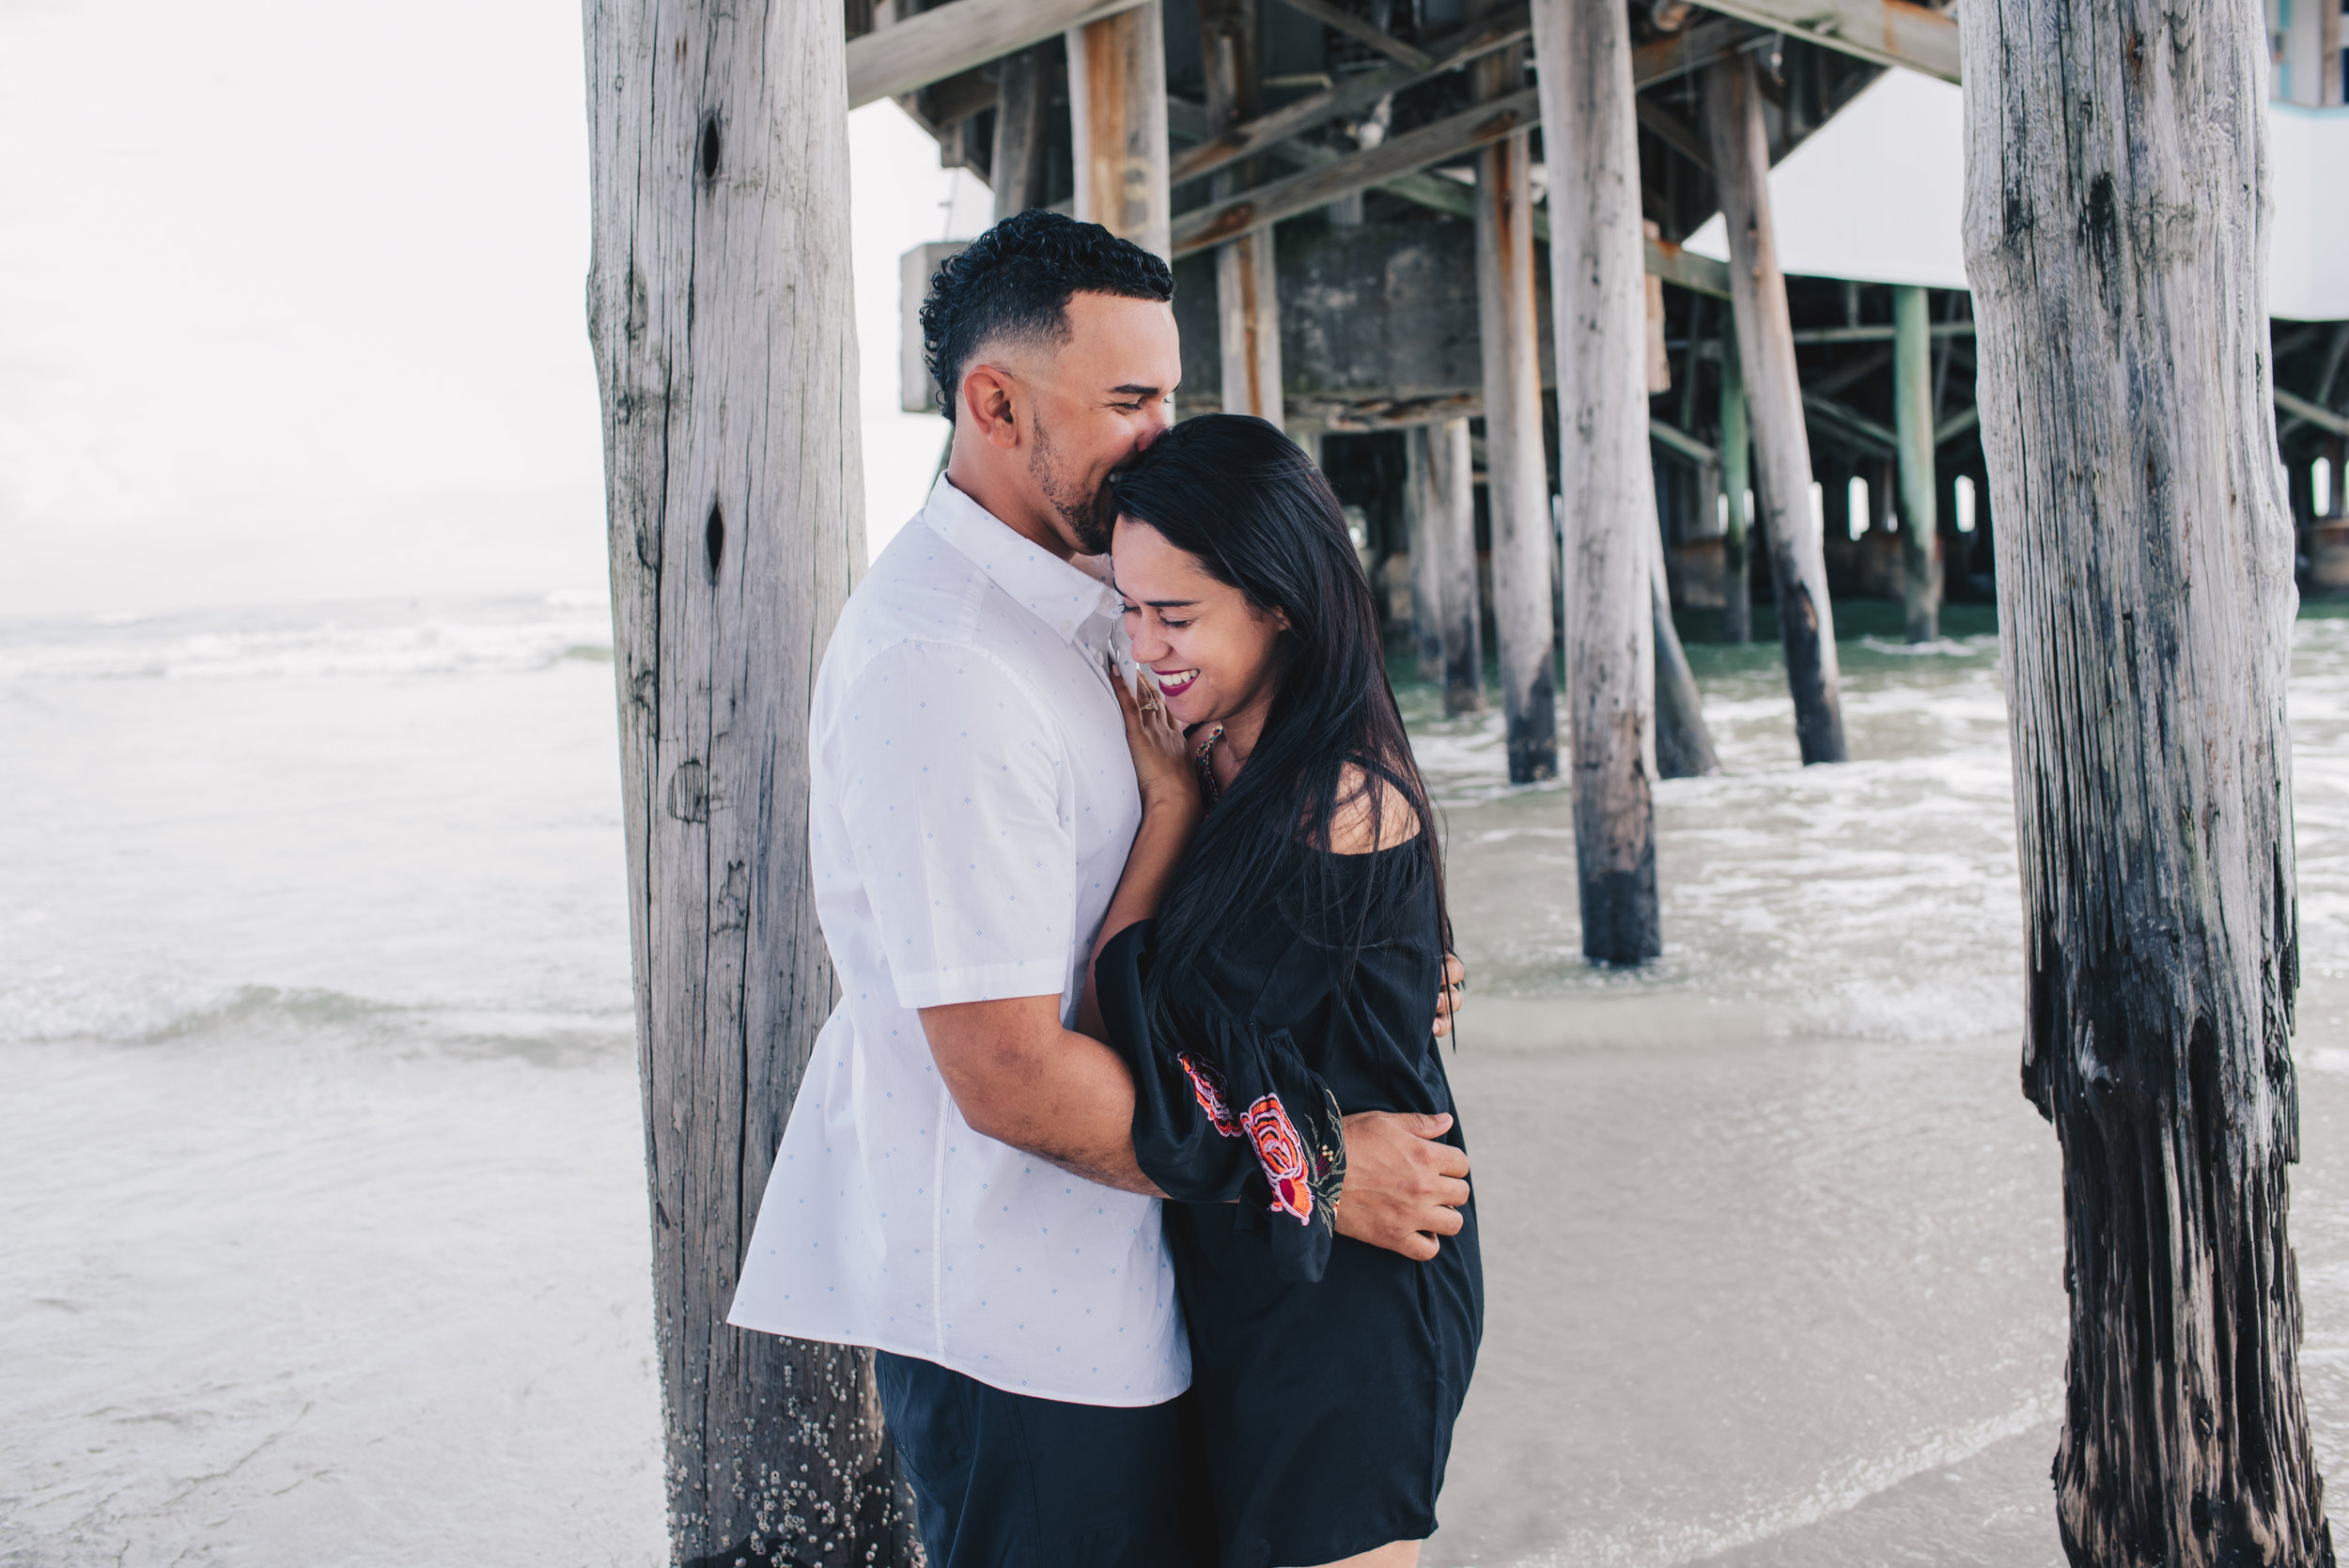 Los-Vargas-Photo-Boardwalk-Summer-Engagement-Session-1190.jpg